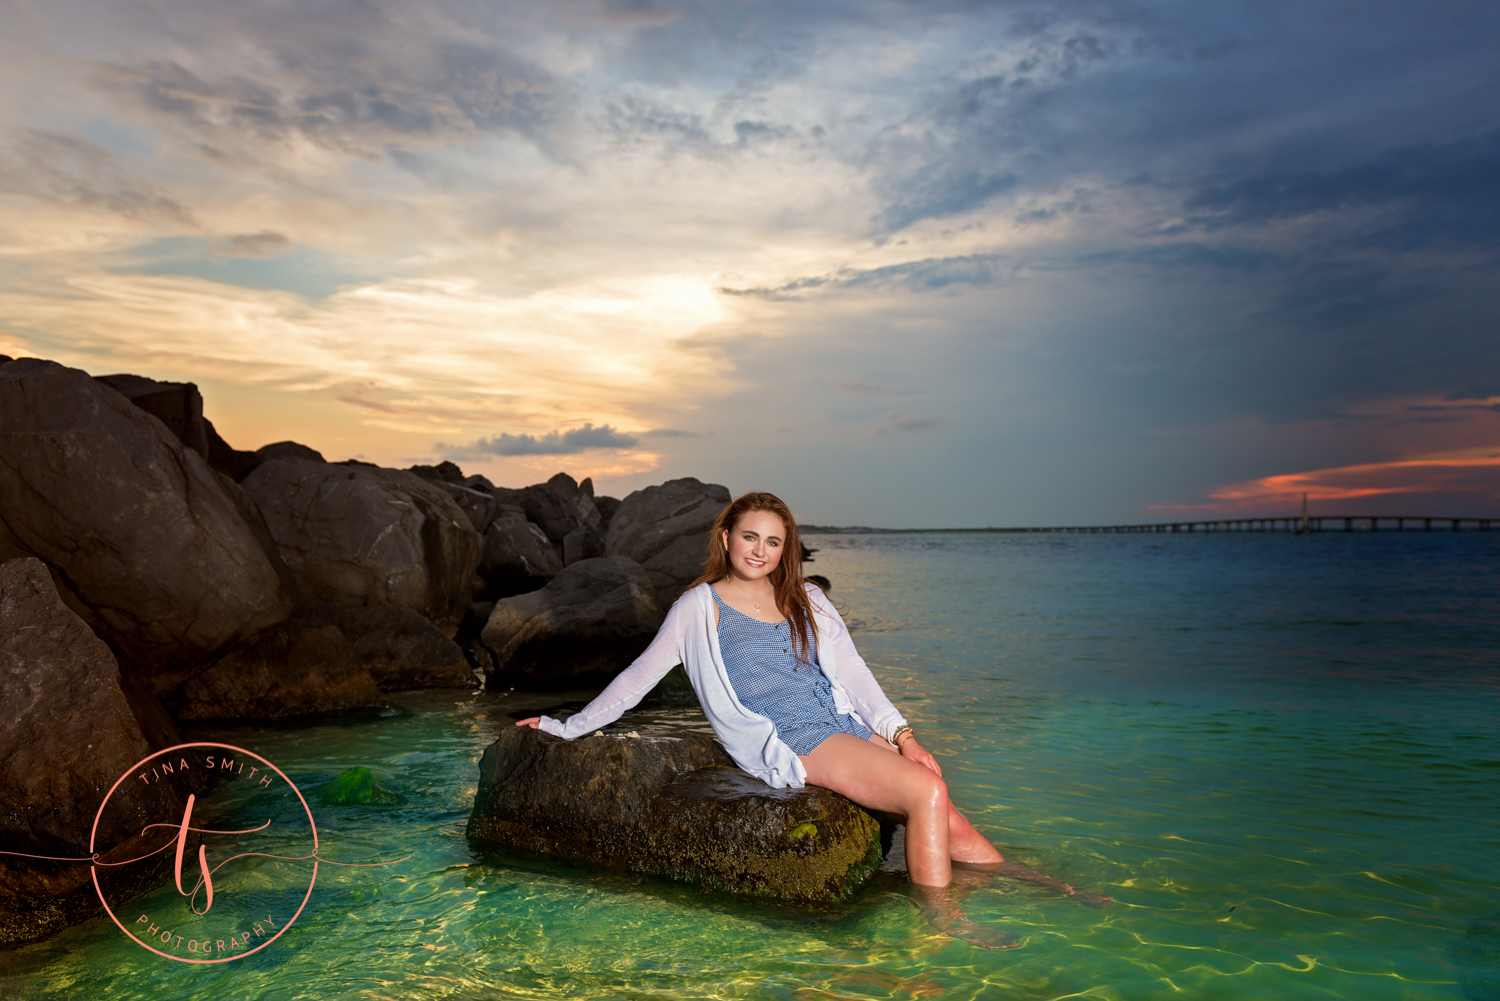 senior girl sitting on rock in emerald green water for photography